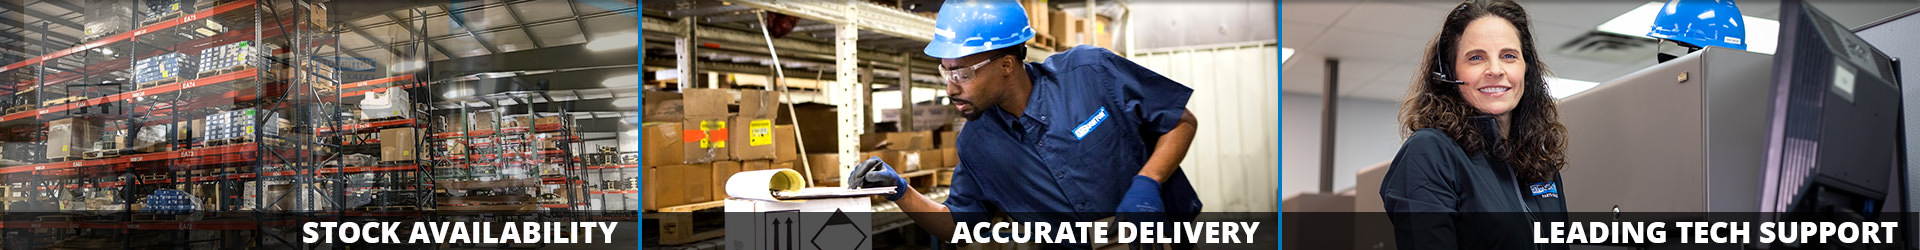 Stock Availability - Accurate Delivery - Leading Tech Support